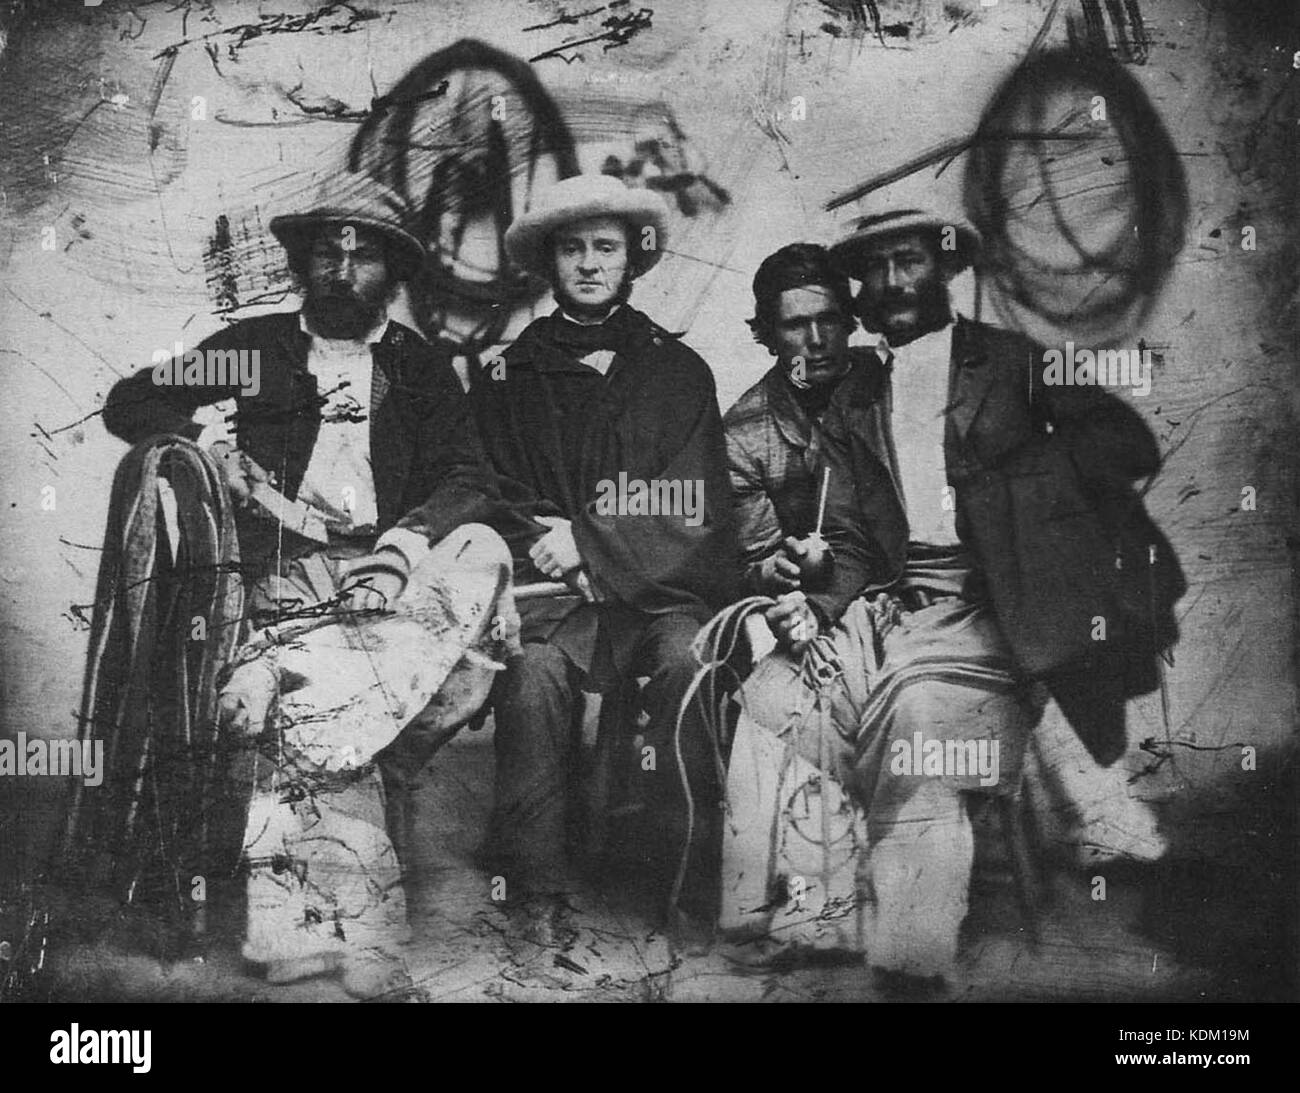 Hombres campo buenos aires 1860 - Stock Image